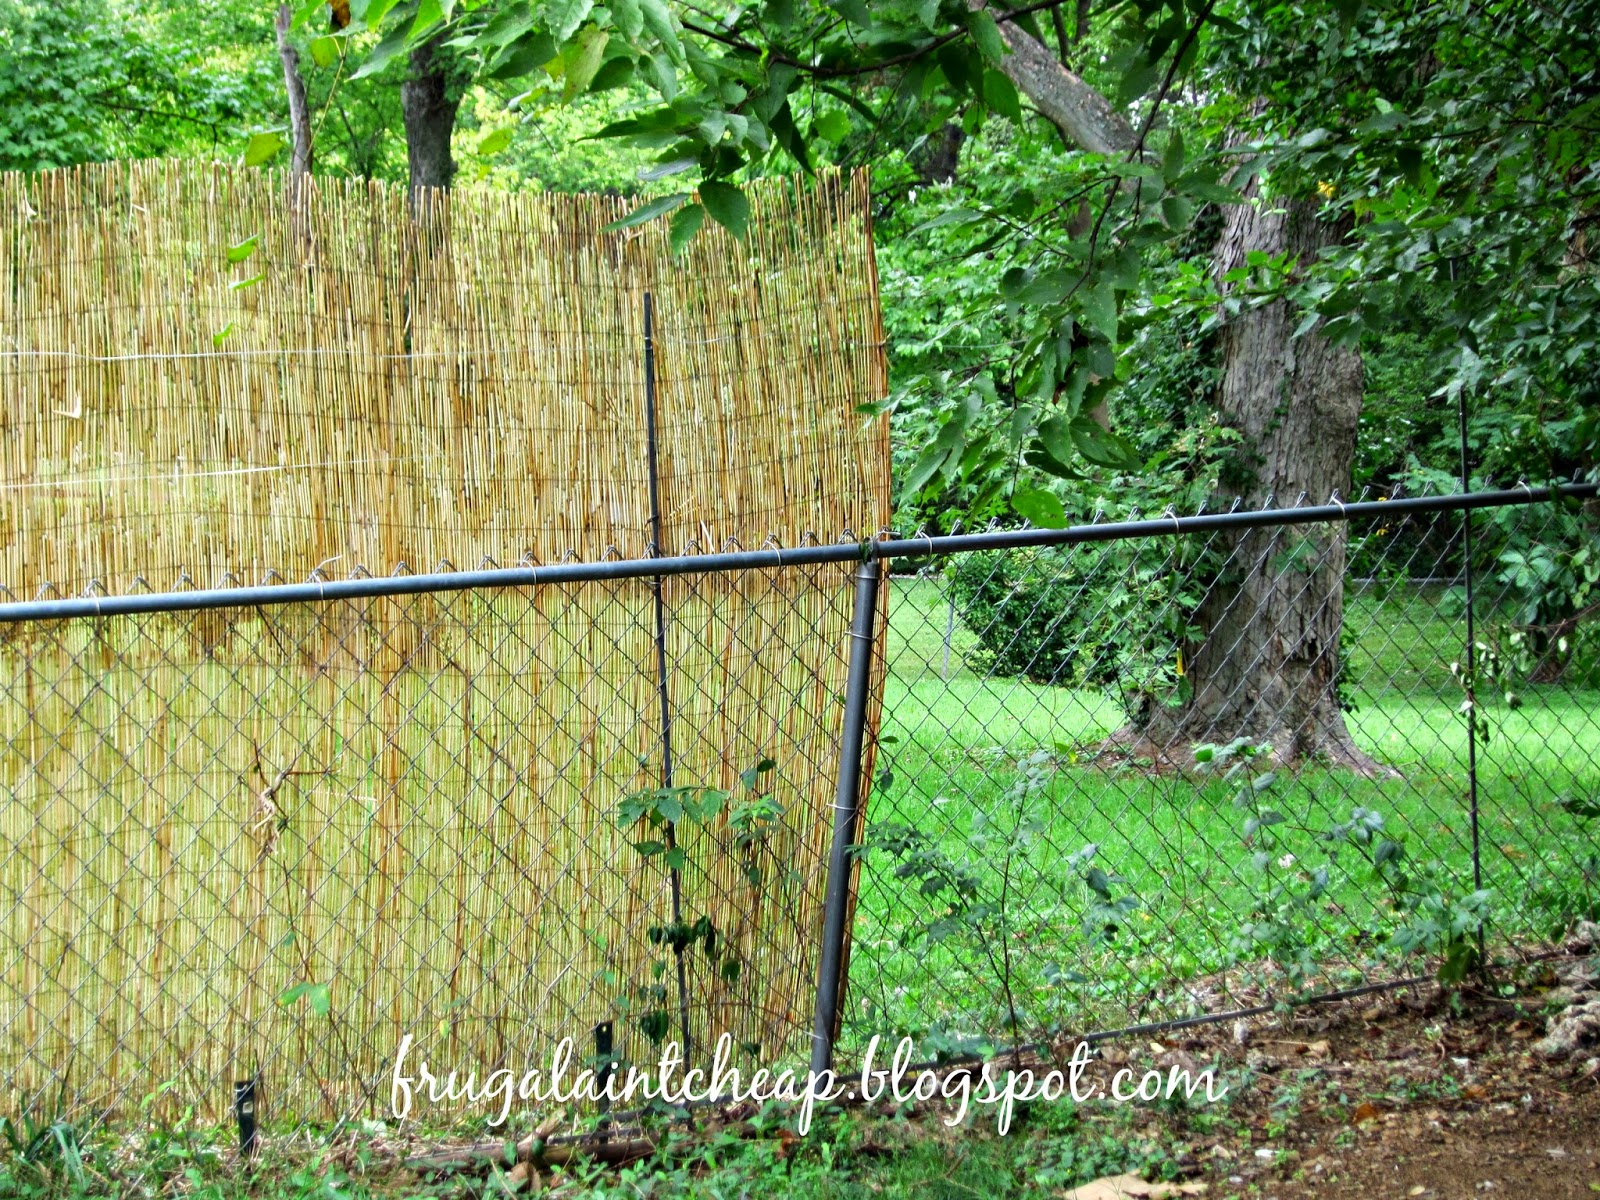 Frugal aint cheap chain link fence project i then added metal wire connecting the polesstakes to give it extra stability baanklon Images